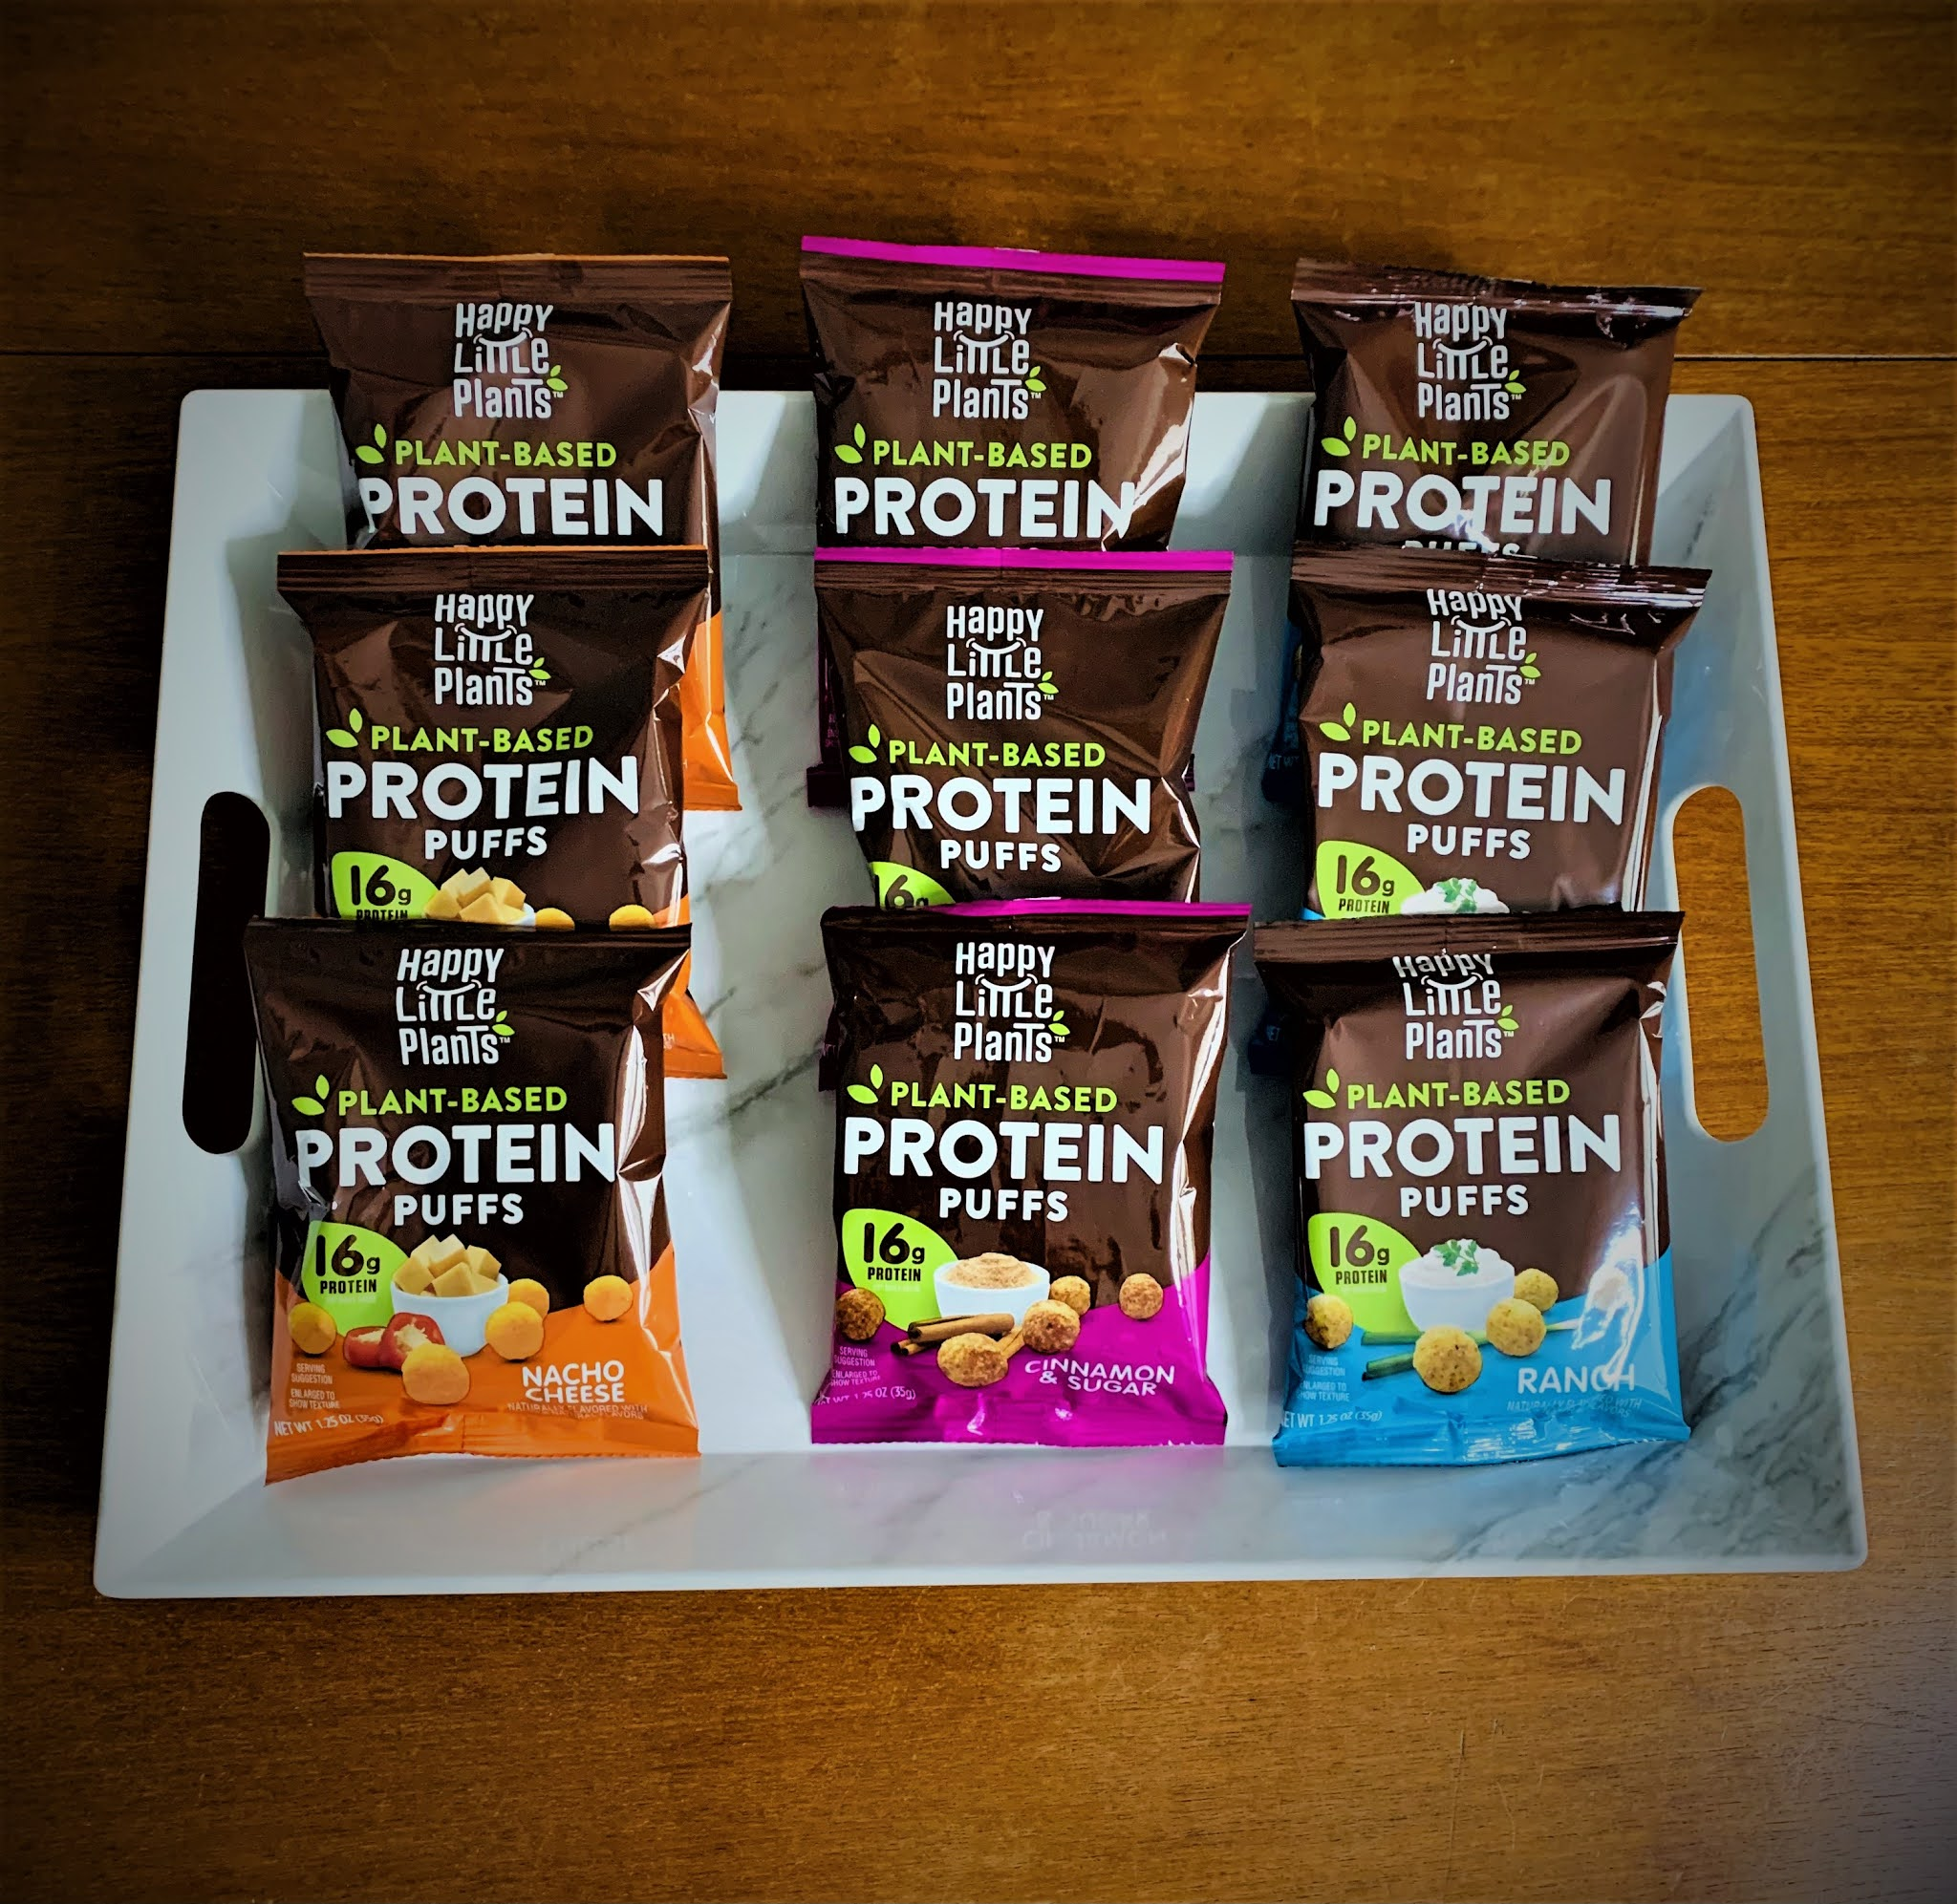 Happy Little Plants Protein Puffs in snack bags